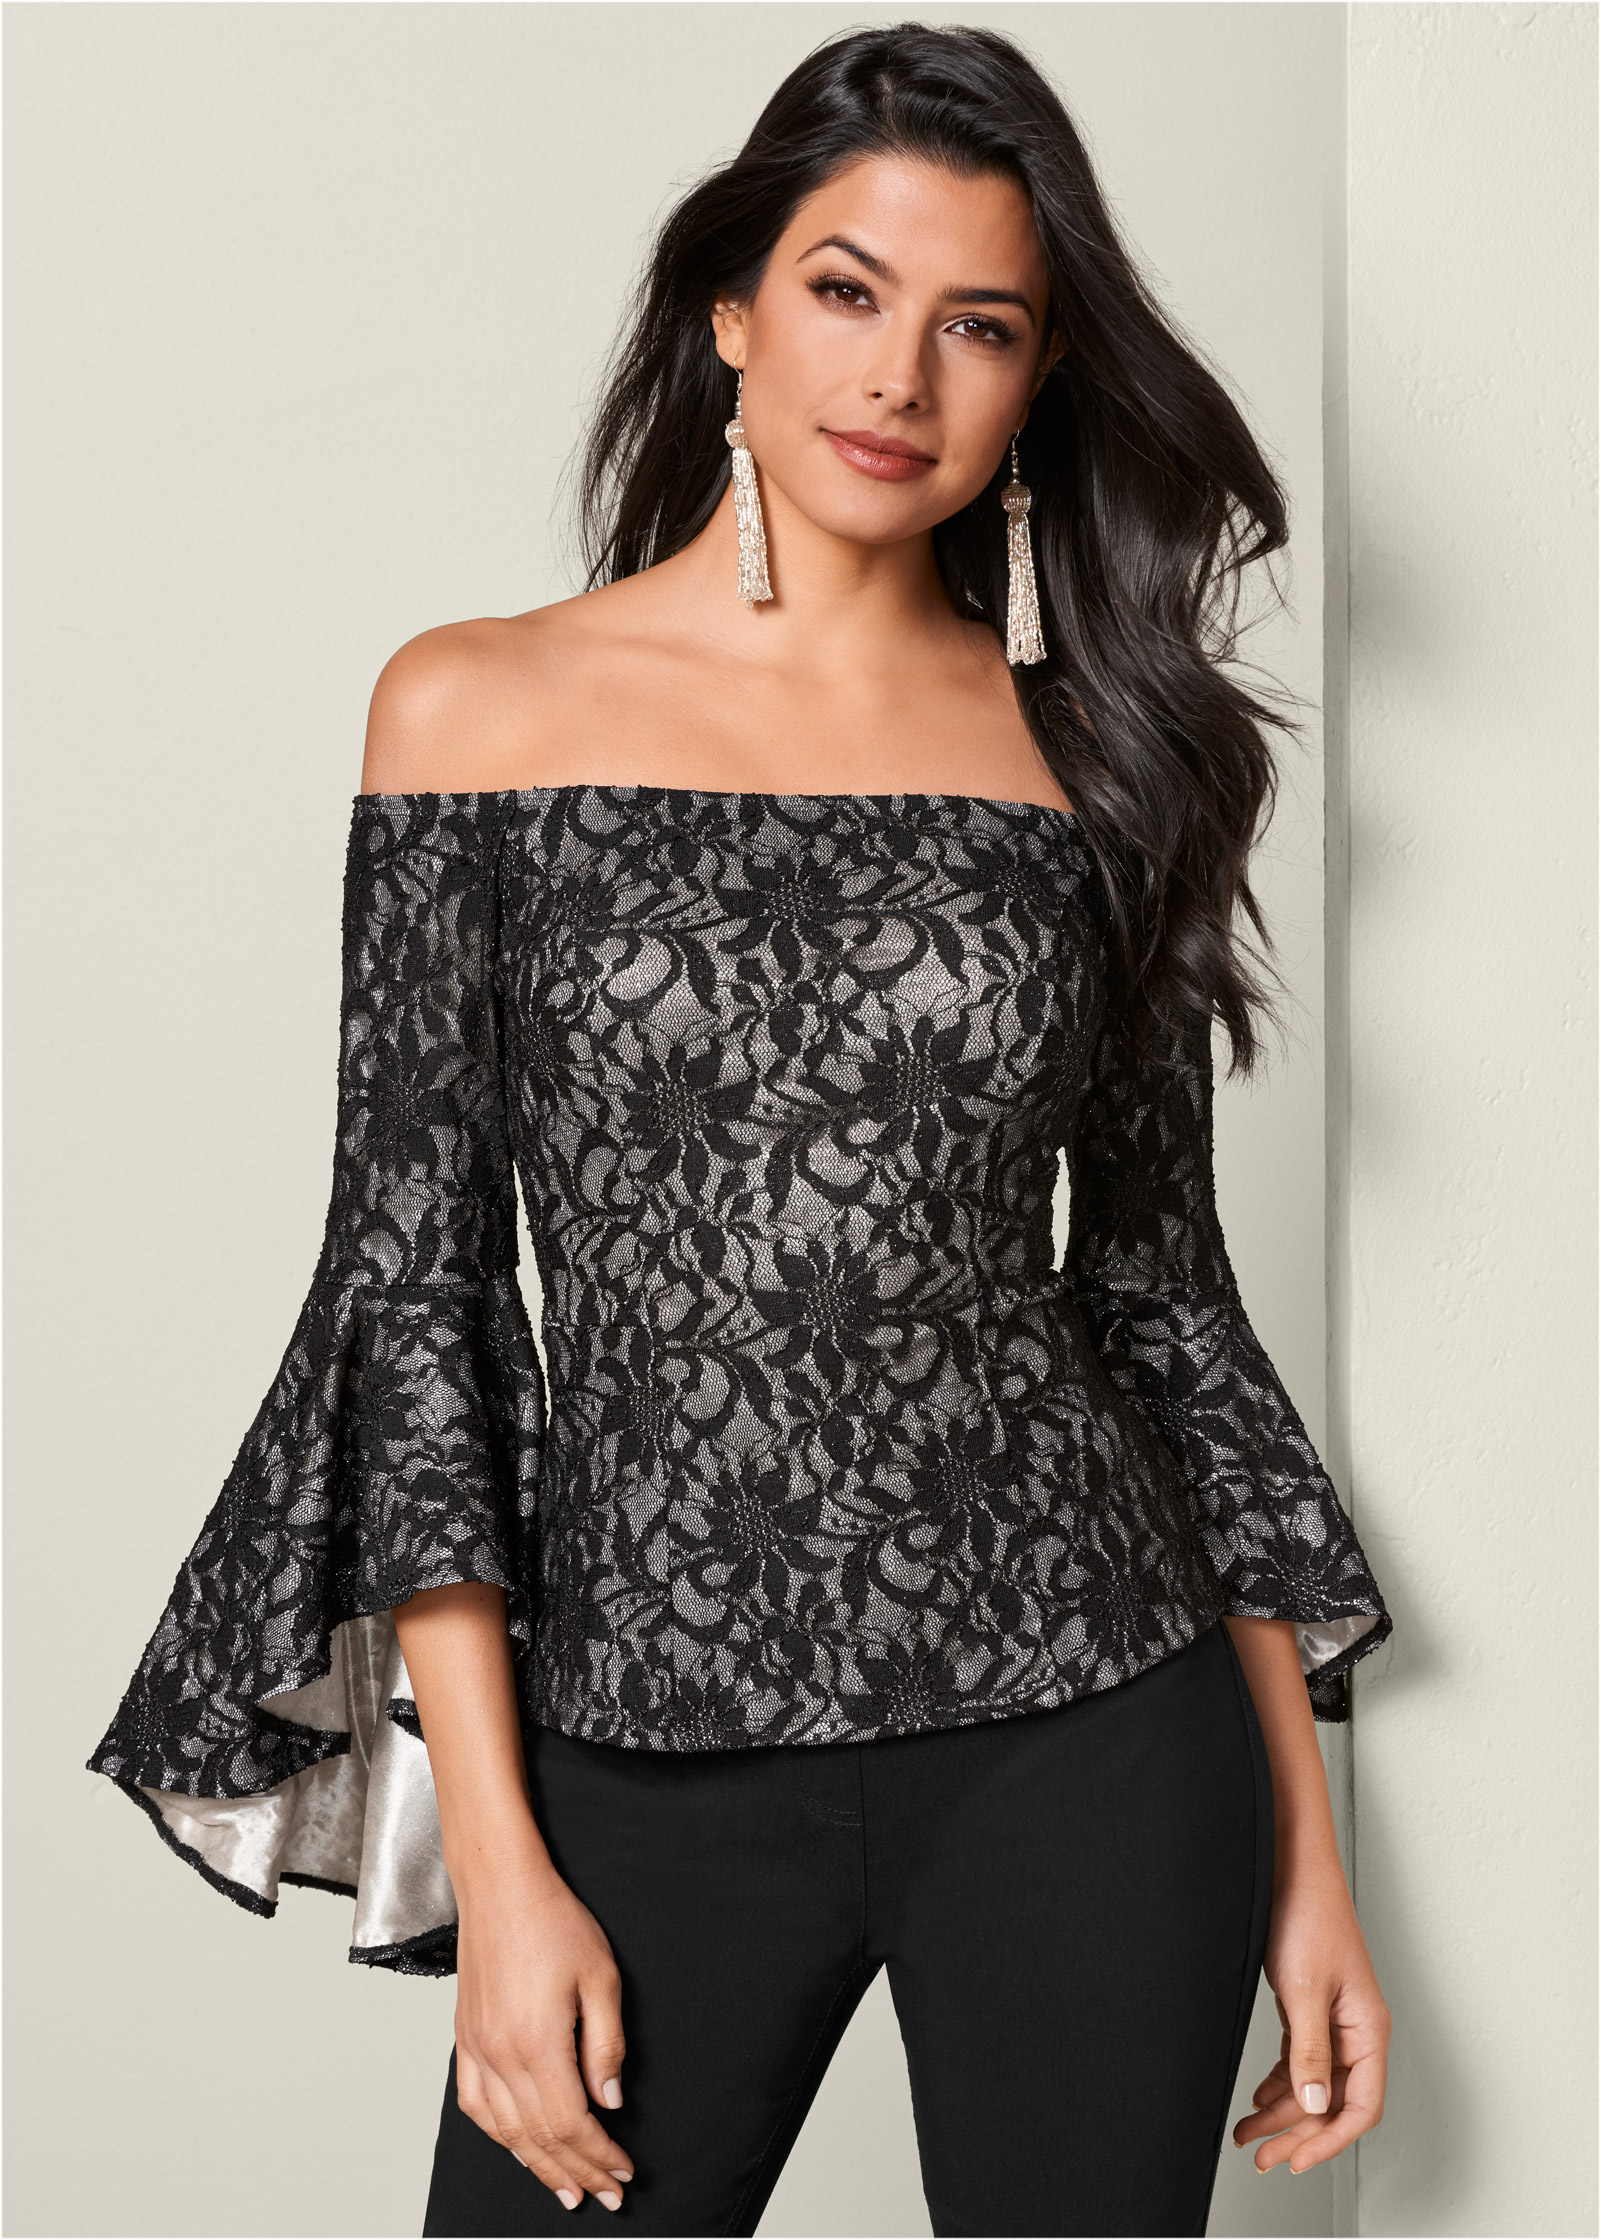 Black Multi TRUMPET SLEEVE LACE TOP from VENUS